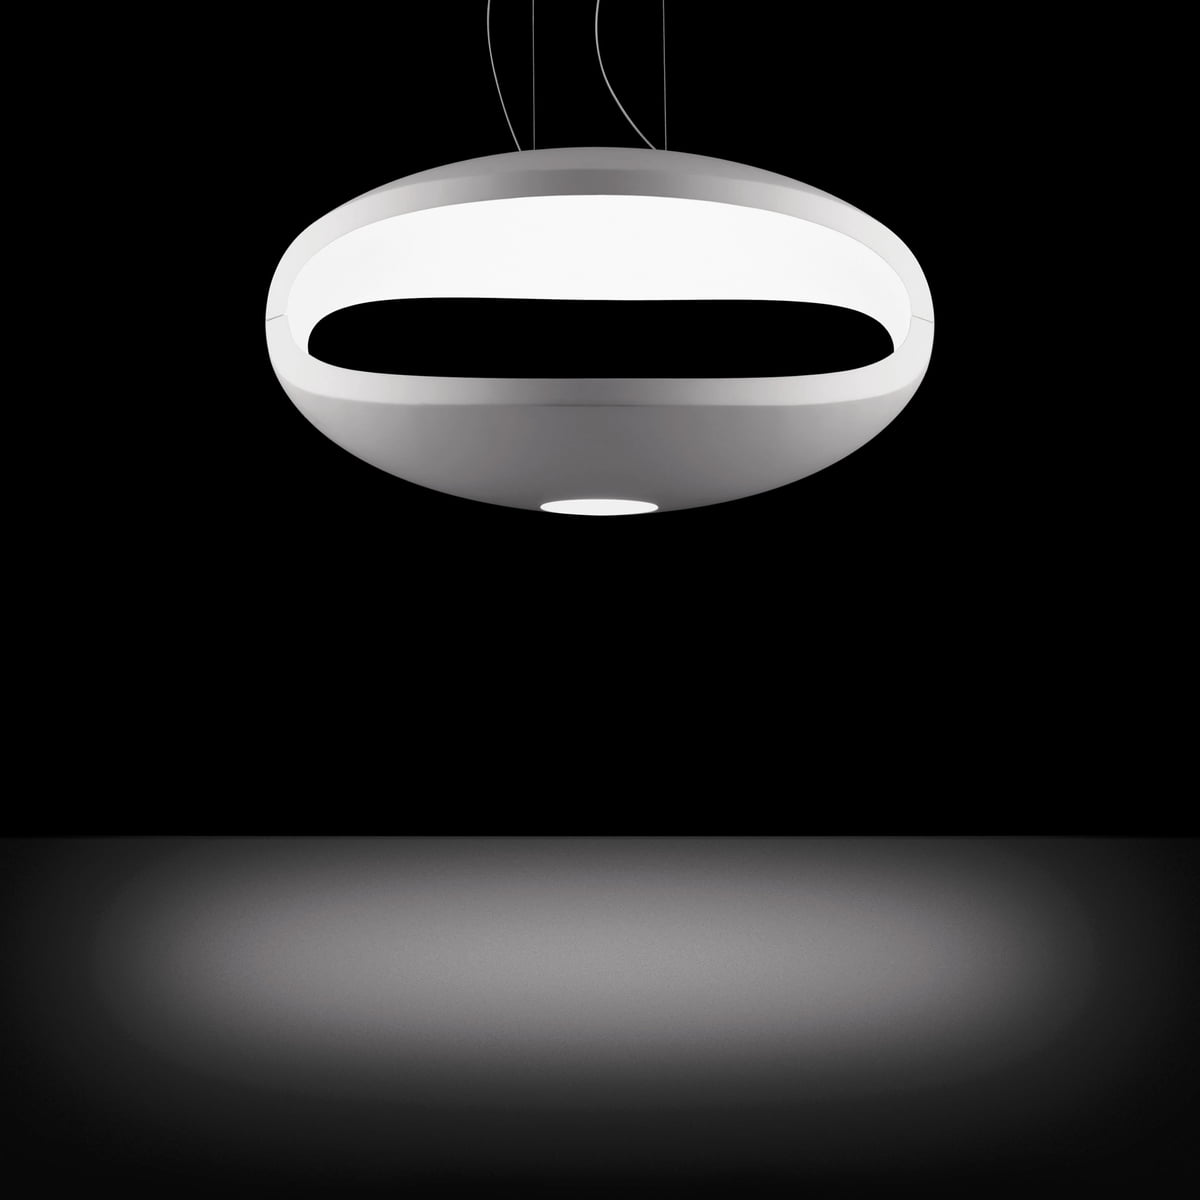 o space pendant lamp by foscarini. Black Bedroom Furniture Sets. Home Design Ideas